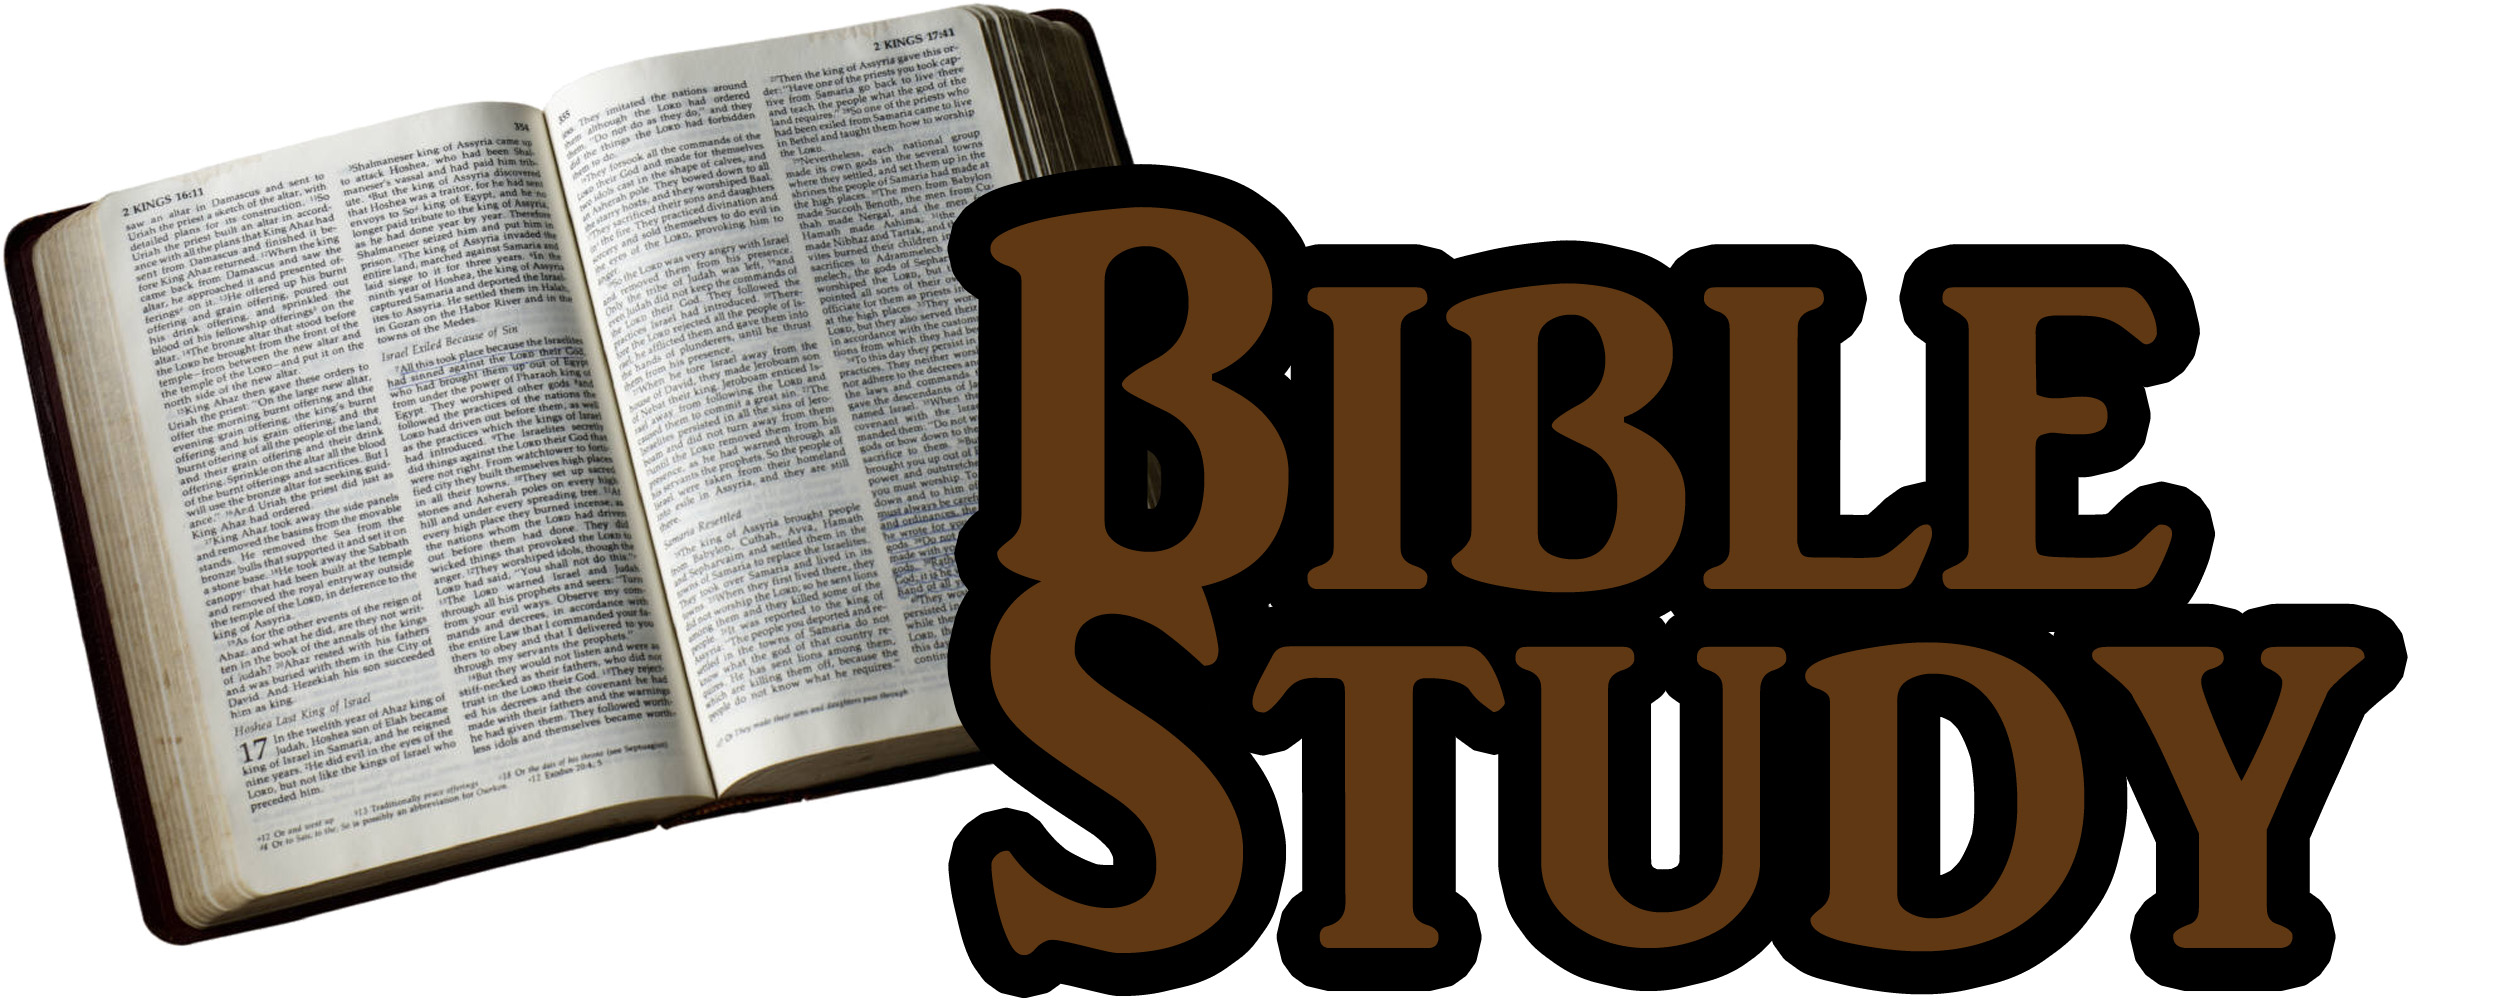 bible study Overview, choose from over 100 bible commentaries freely available online at studylightorg for sermon, bible study, and sunday school preparation.